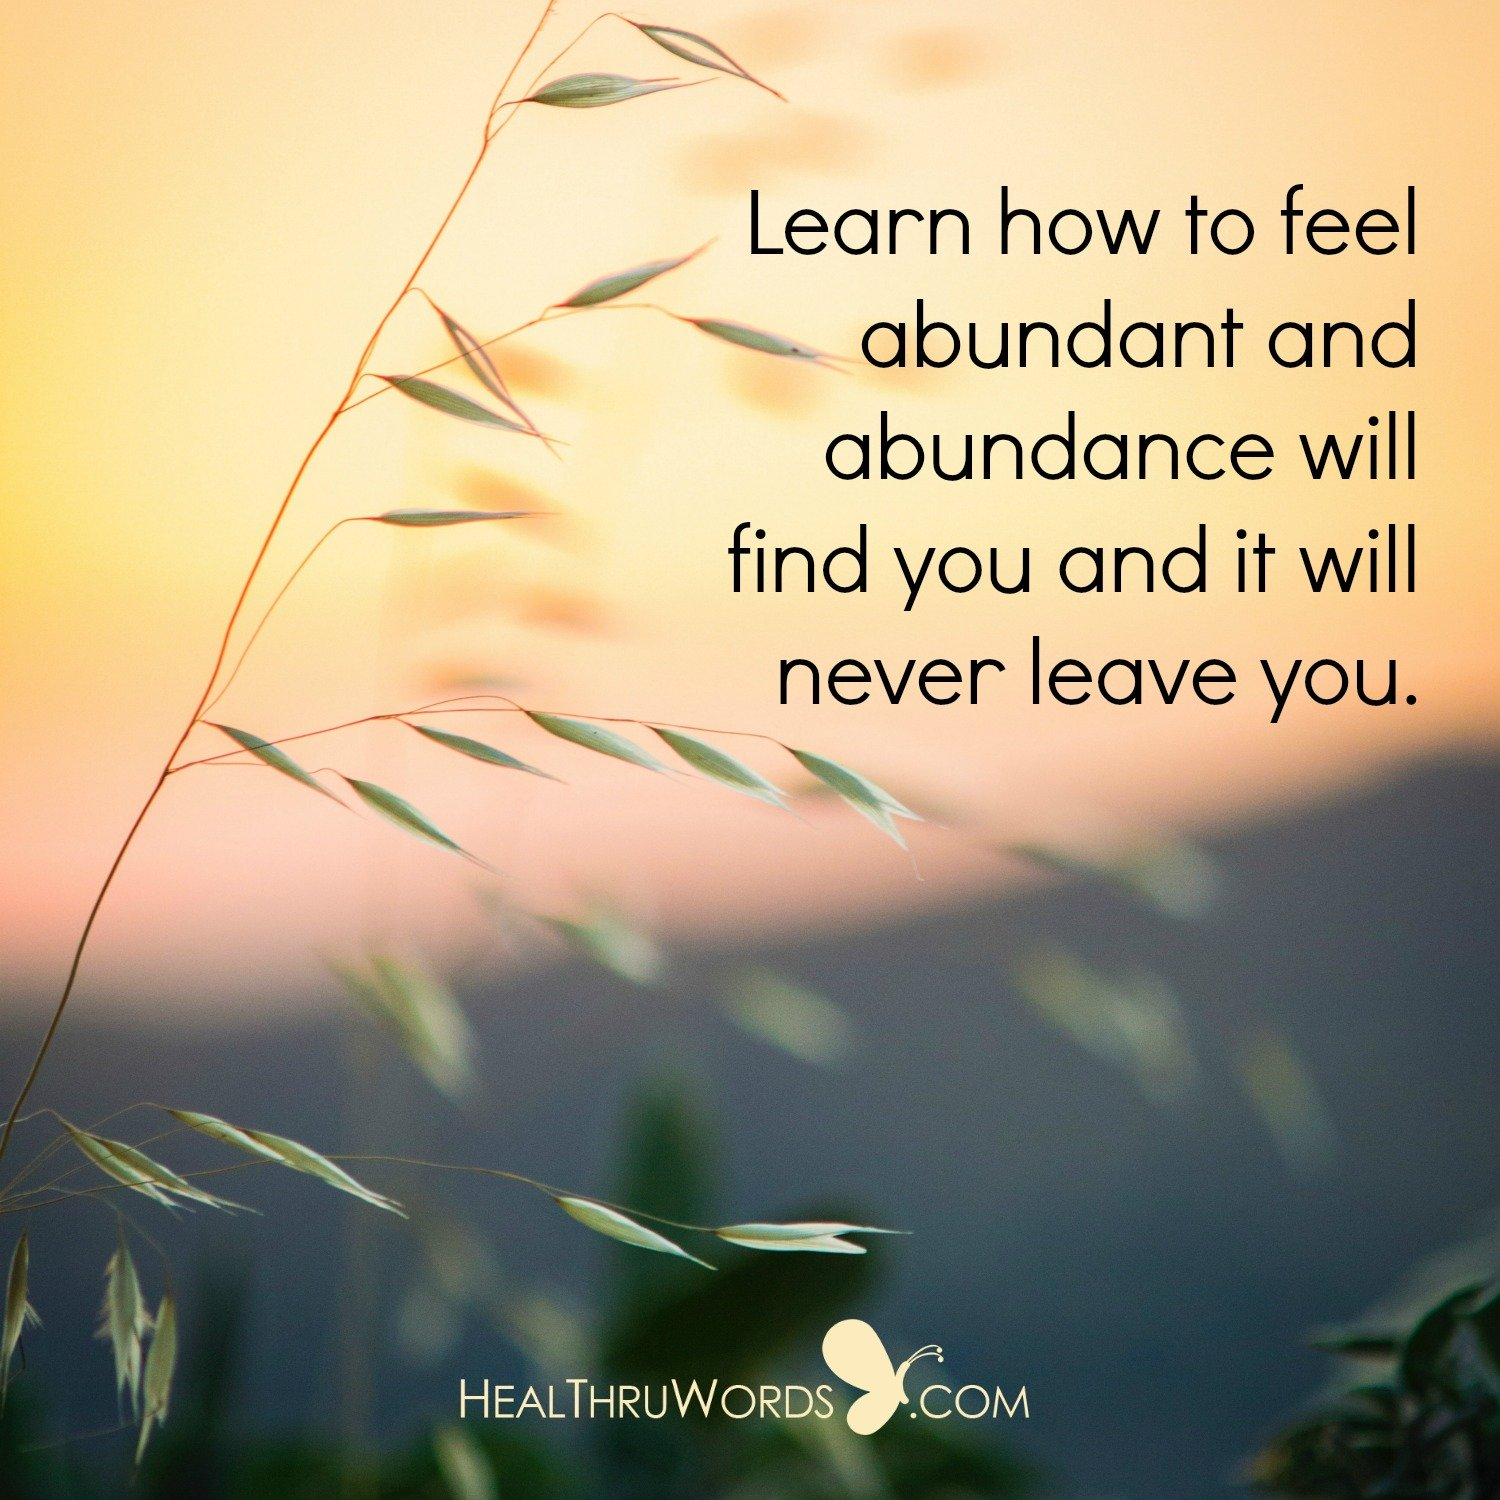 Inspirational Image: The Feeling of Abundance